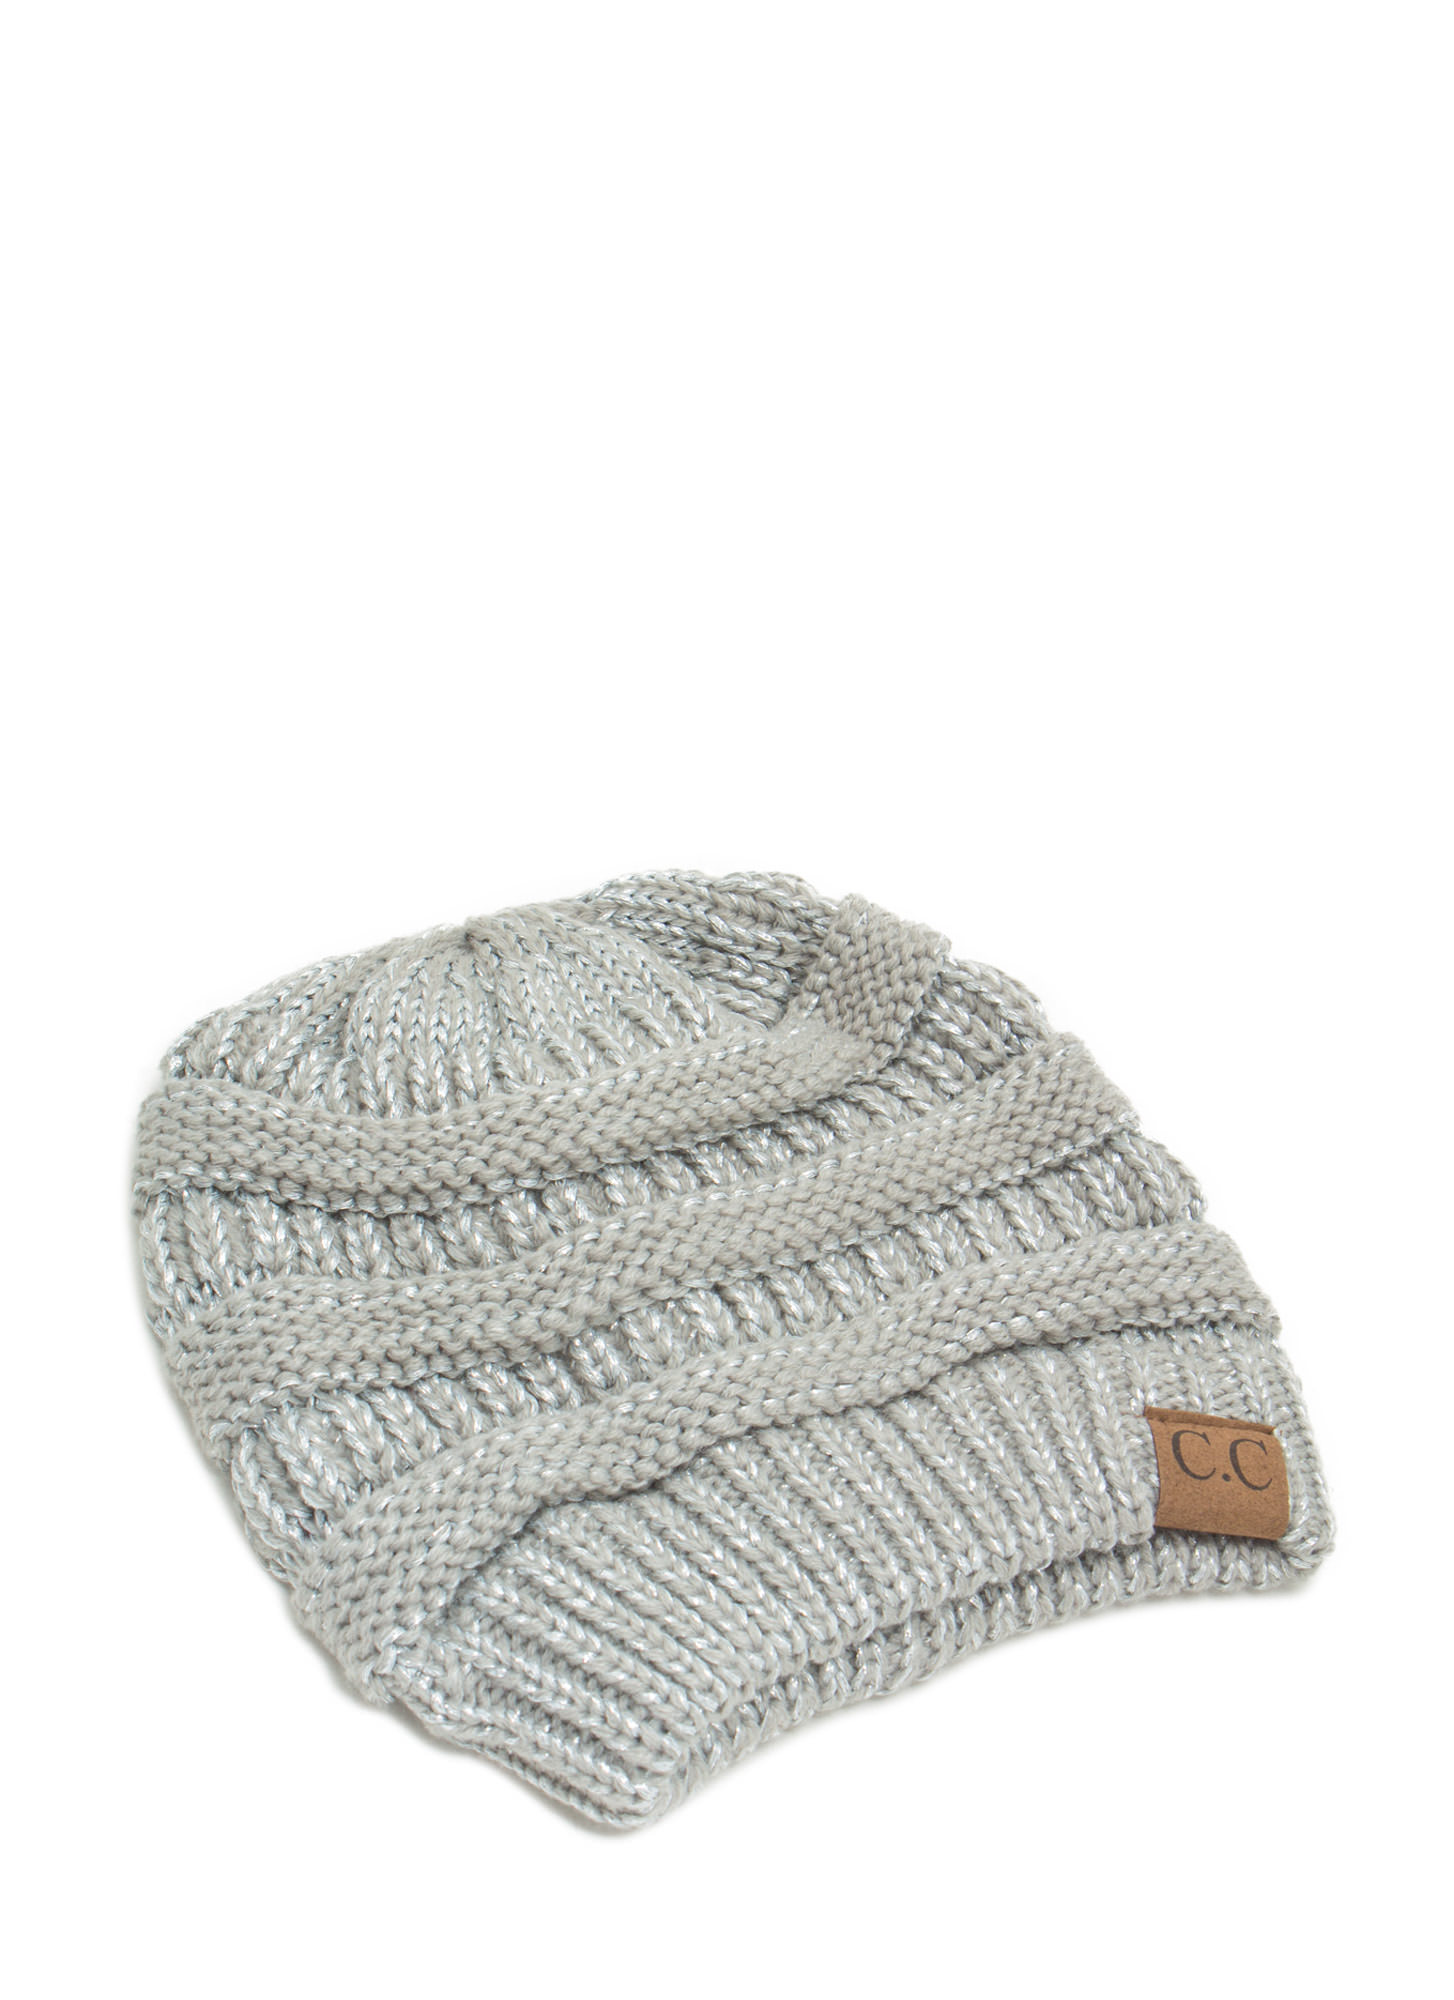 CC Cable Kit Beanie SILVER